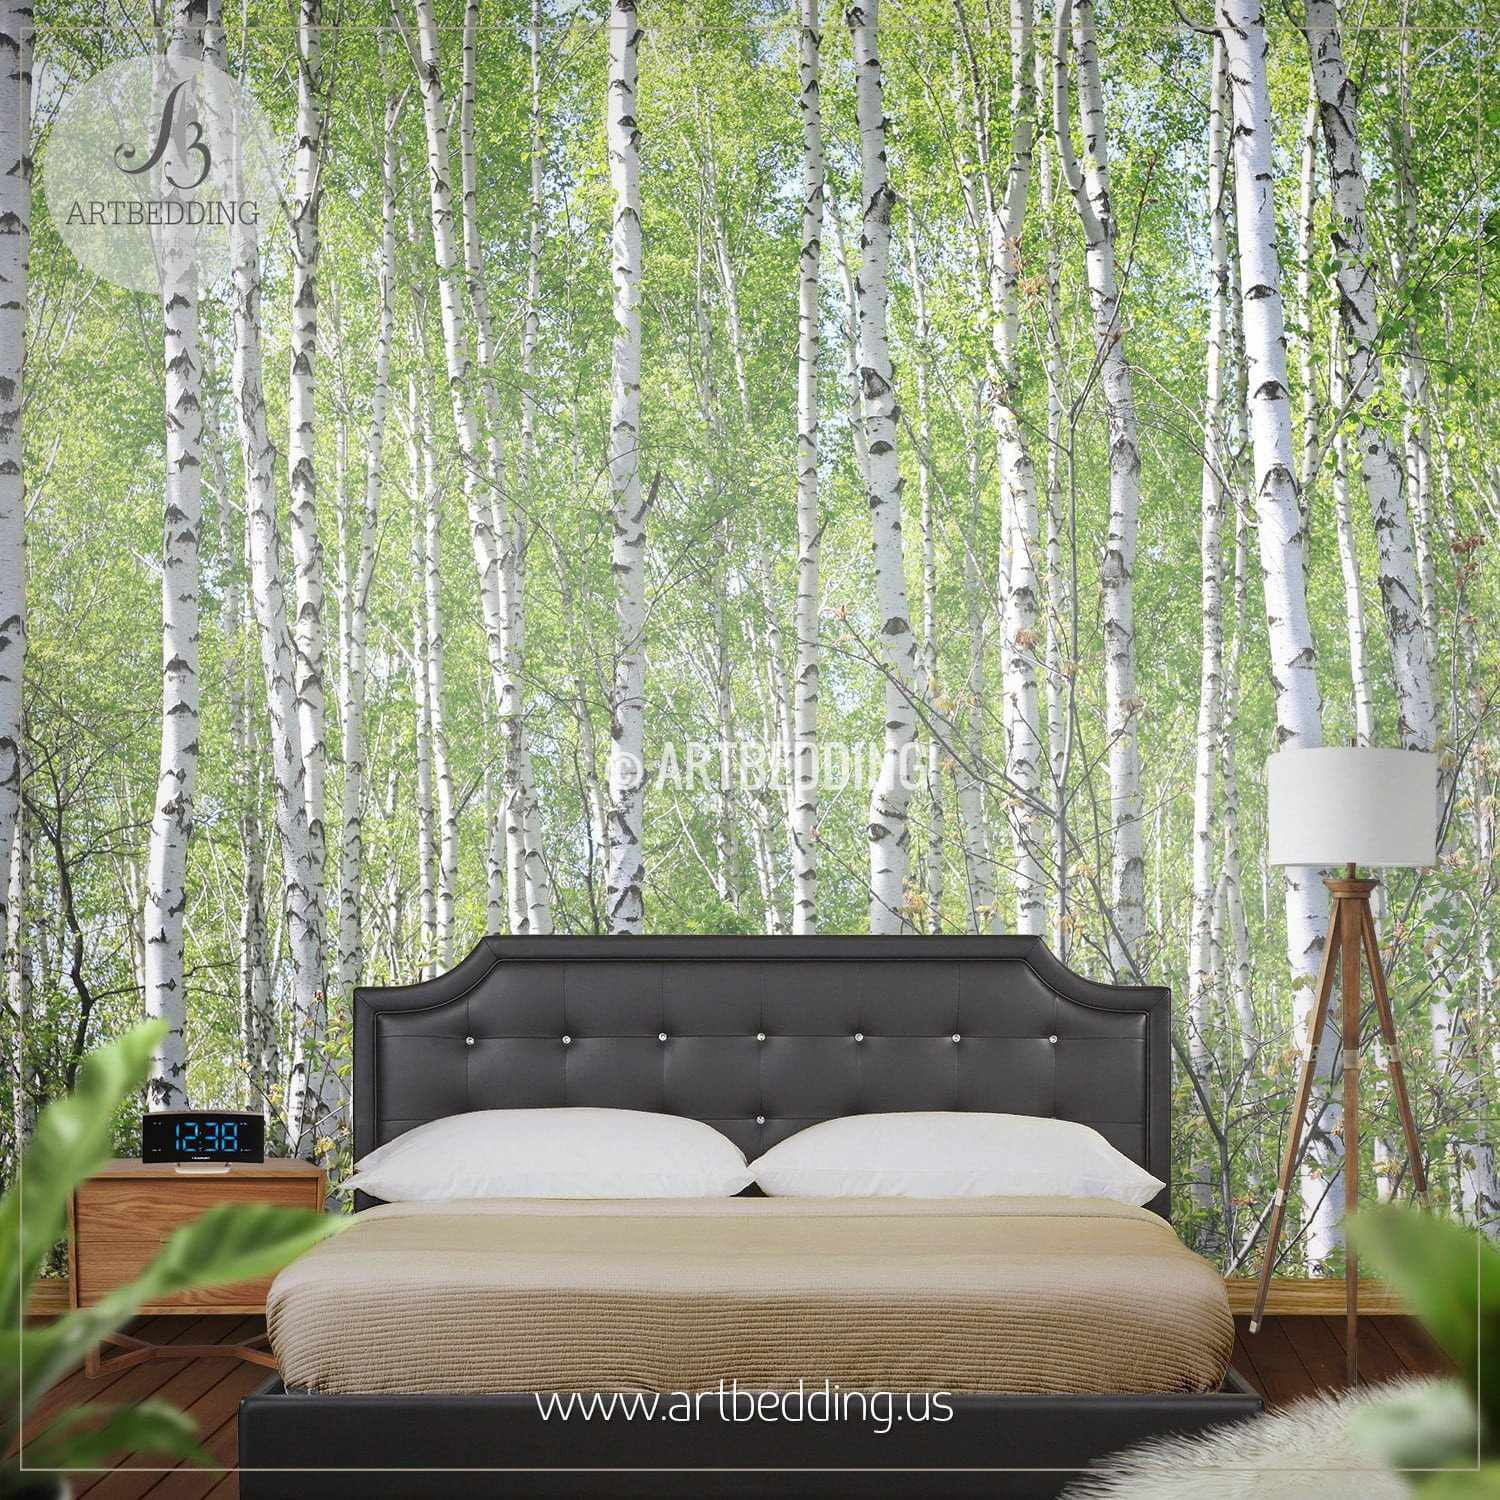 self-adhesive vinly birch forest wall mural forest mural birch wall decal birch tree wall mural moor wall mural, FOREST WALL MURAL